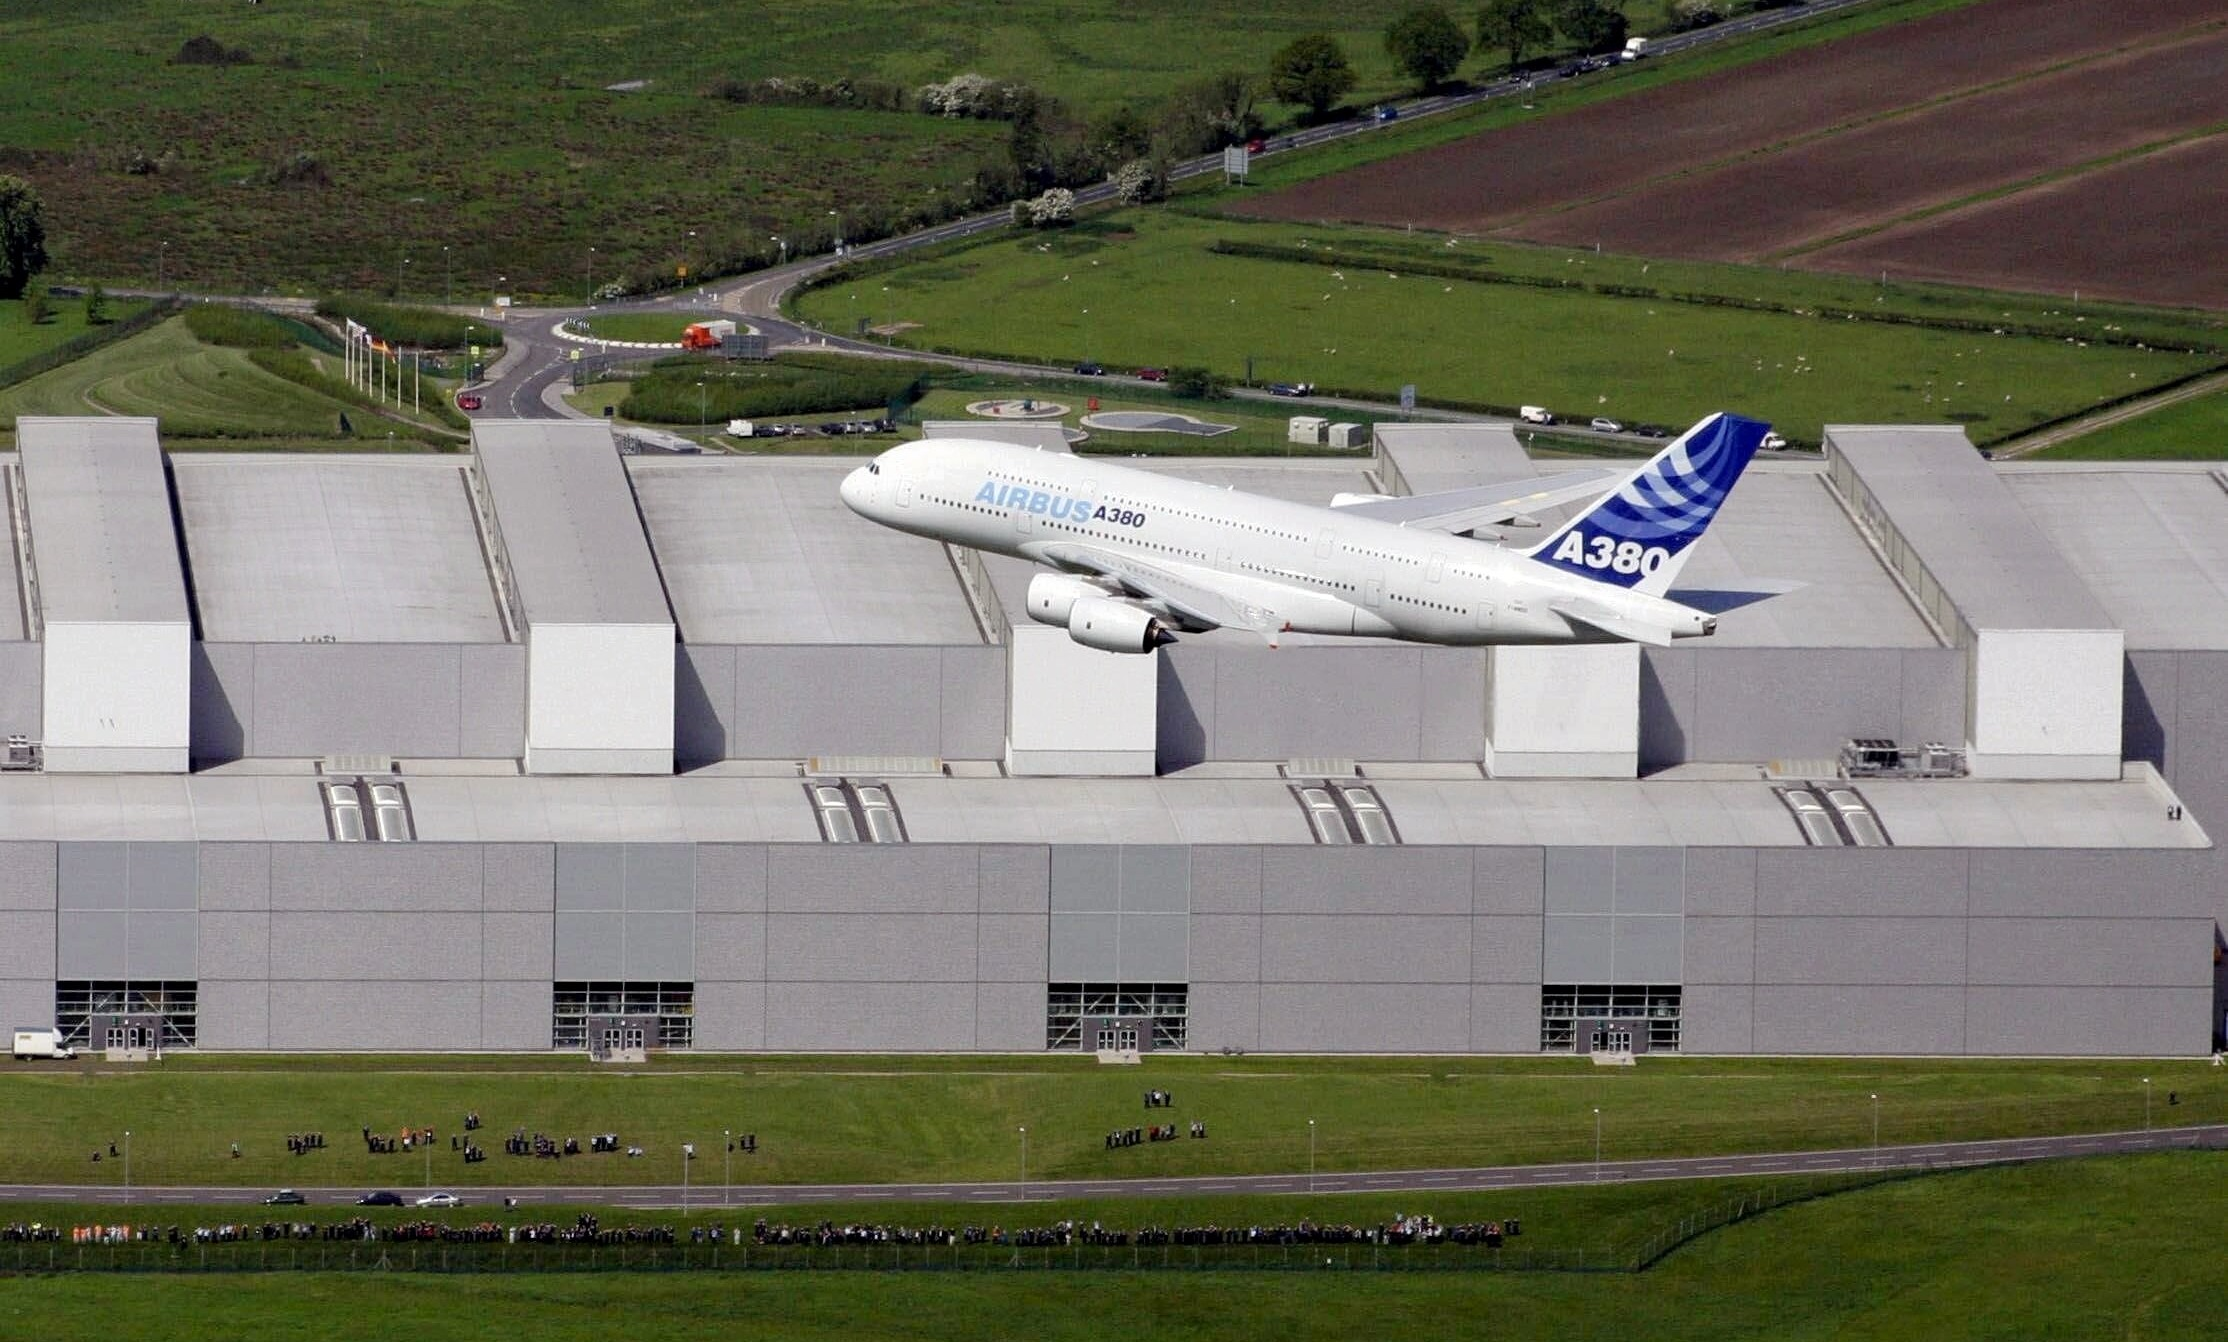 Airbus says no decision on future of West Factory after A380 production ends has been made